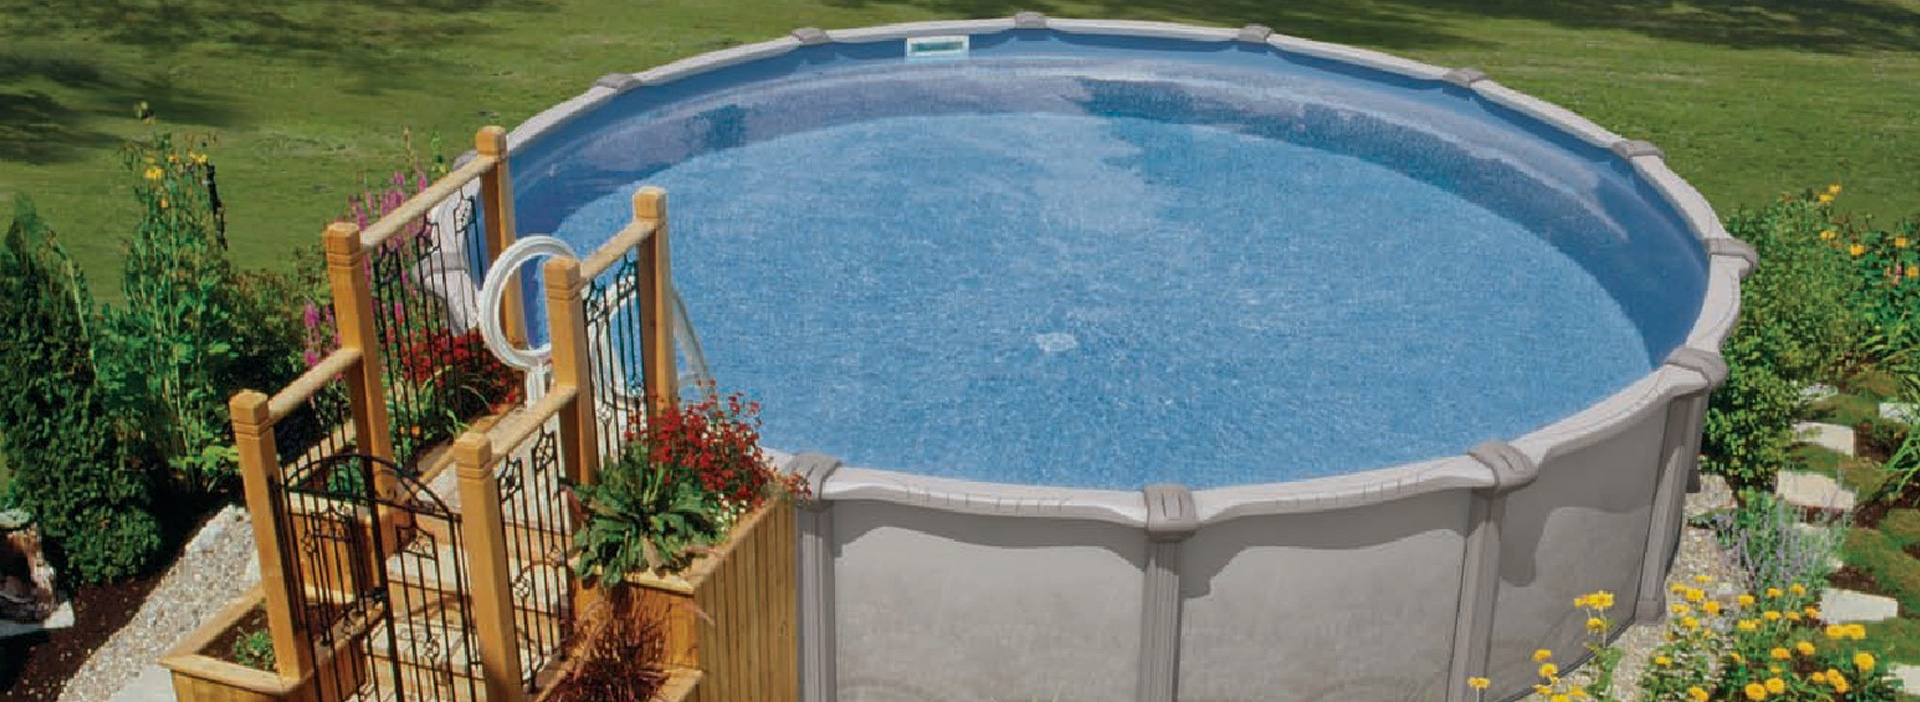 Above Ground Pools In Hamilton Township Nj Valley Spas